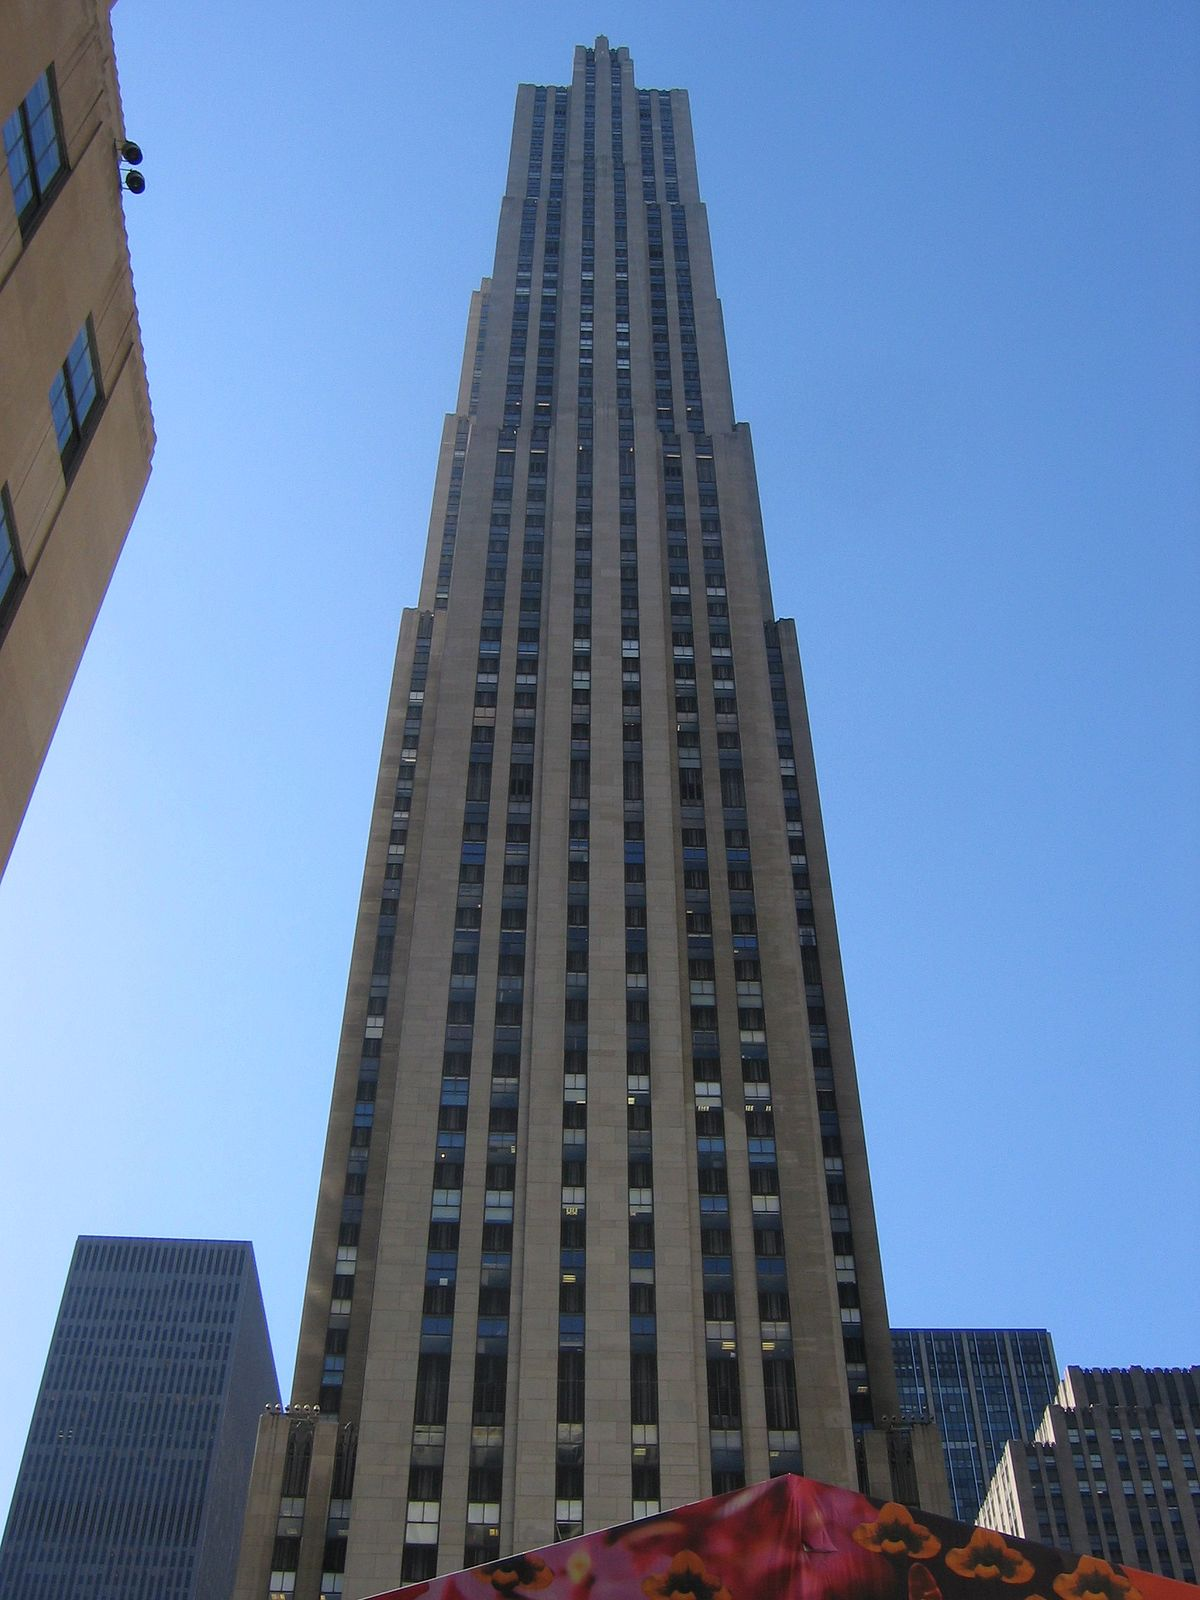 List of awards and nominations received by 30 Rock - Wikipedia